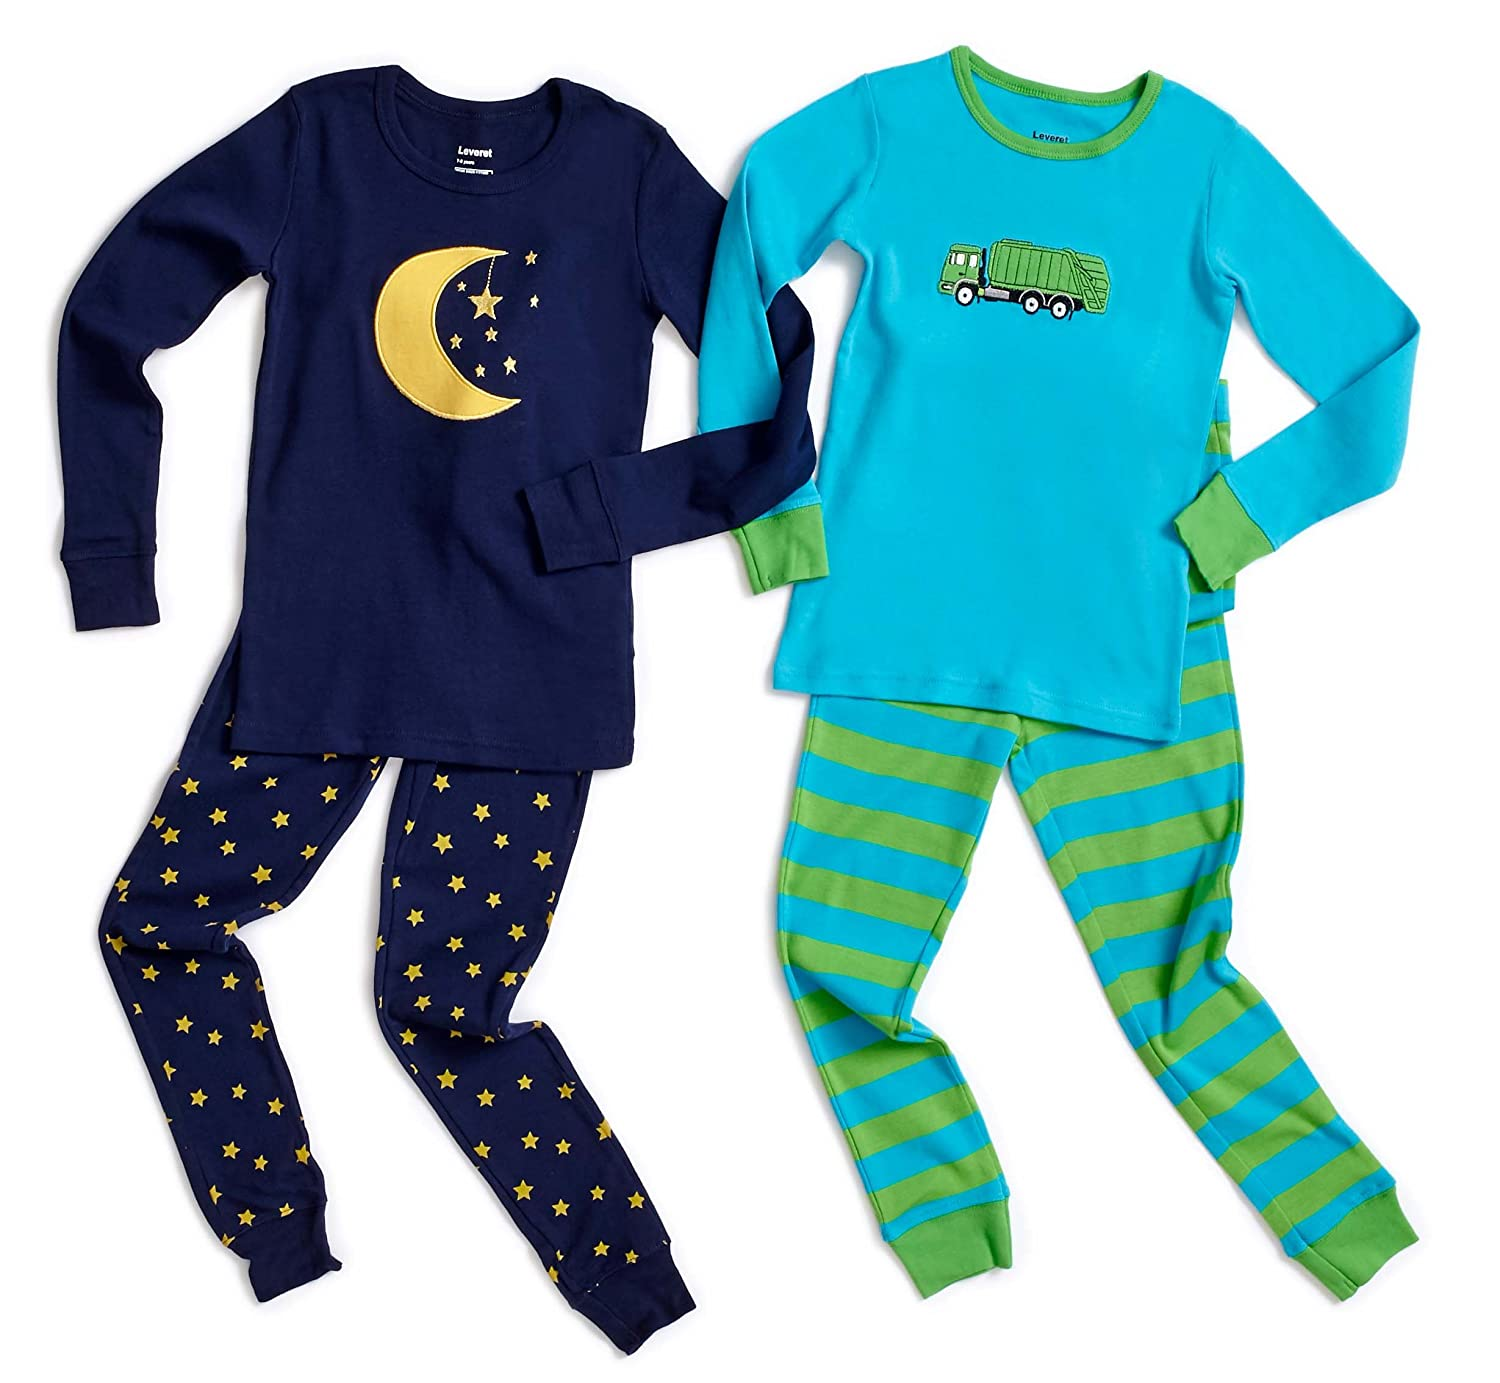 Amazon.com: Leveret Kids & Toddler Pajamas Boys Girls Bumble Bee Truck 4 Piece Pjs Set 100% Cotton (Size 12M-8 Years): Clothing